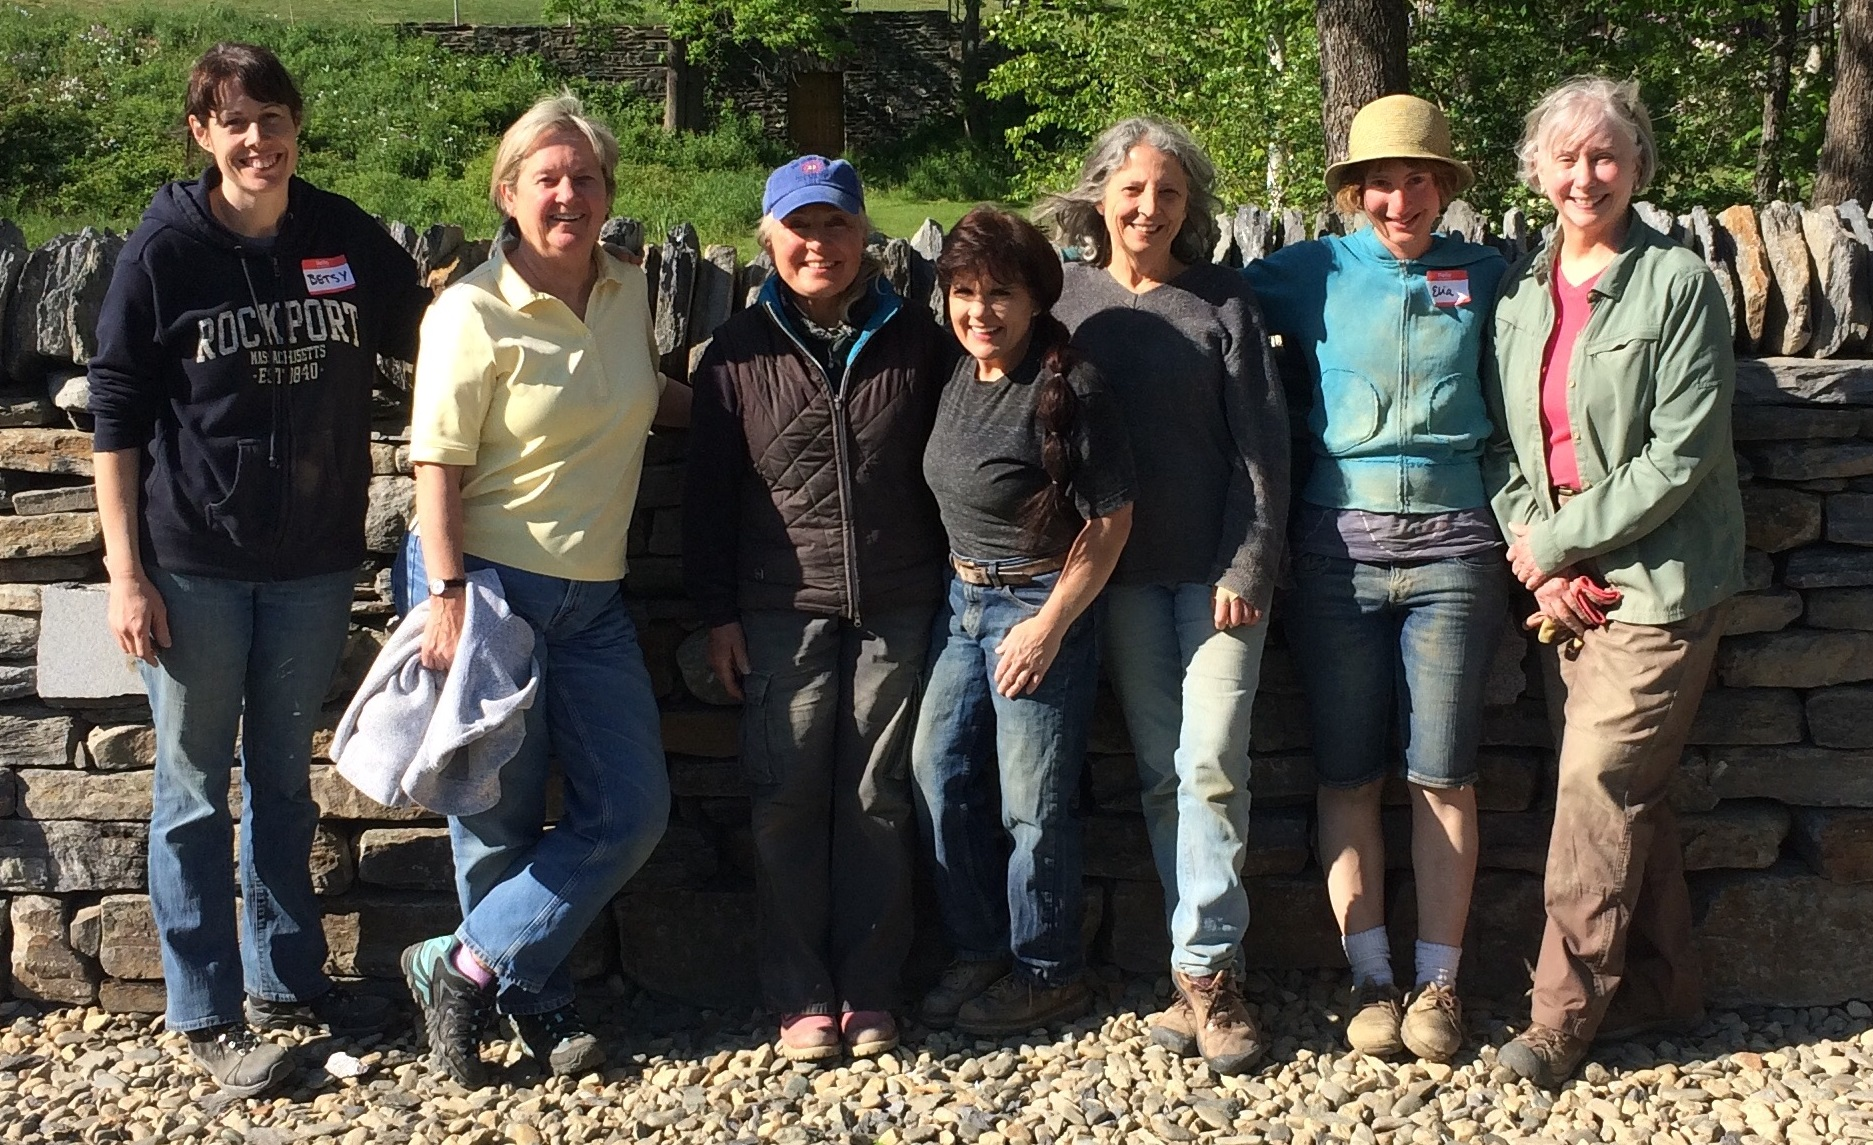 1st ever womens' dry stone wall workshop taught by a certified women instructorin North America. Kim Coggin at the center of the photo.